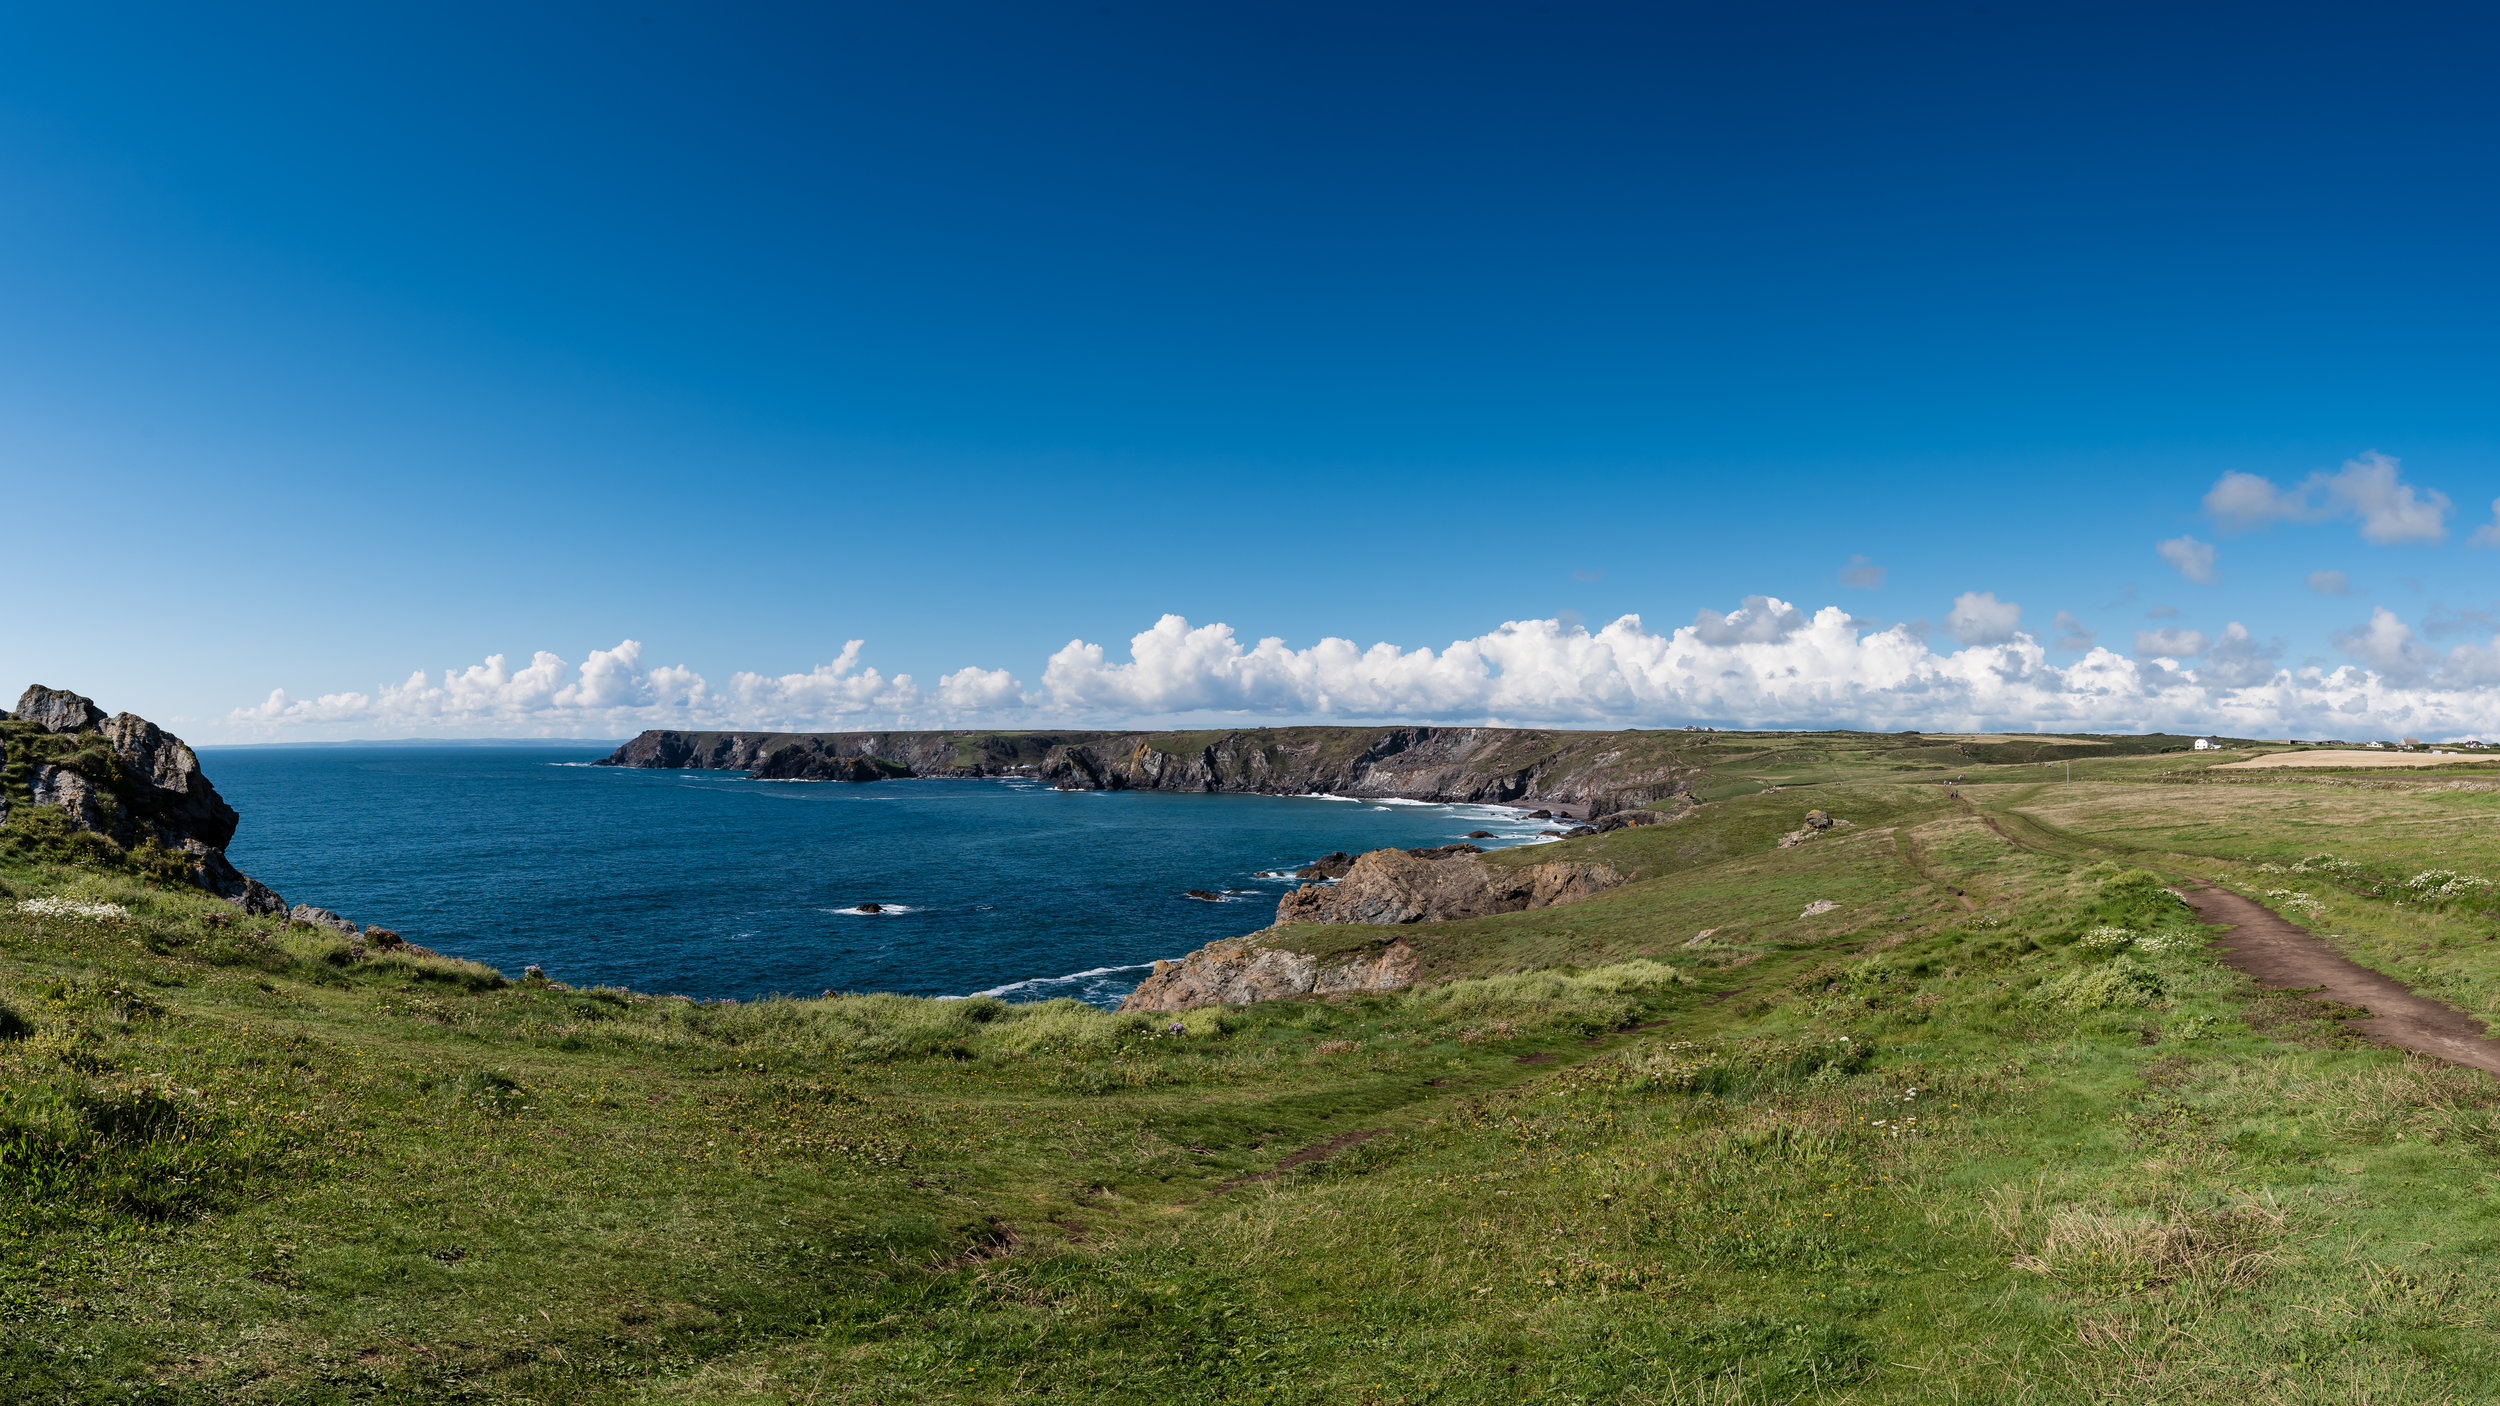 Big skies - using the new pano stitching feature in Lightroom